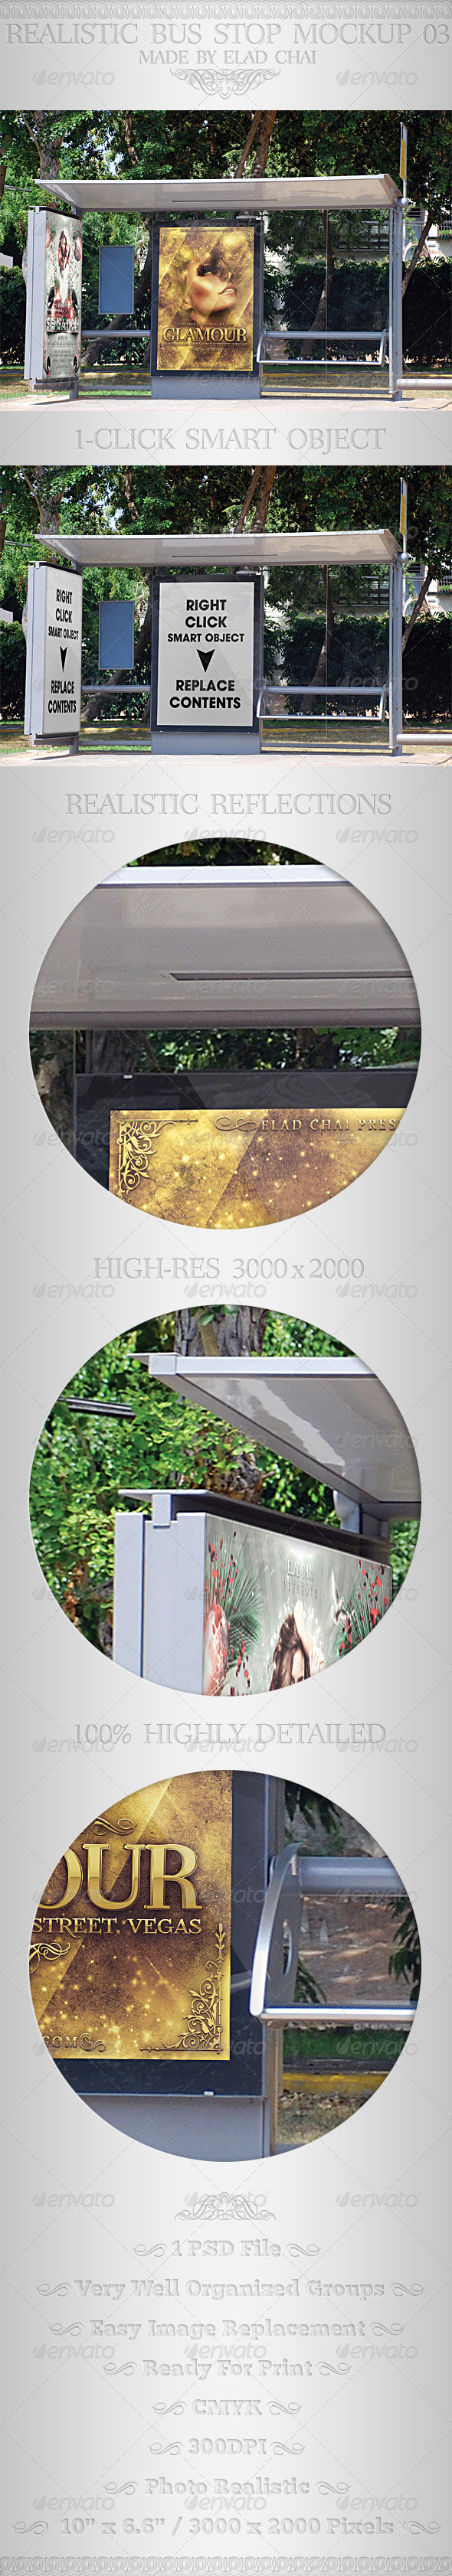 Realistic Bus Stop Flyer Poster Mockup 03 - Signage Print